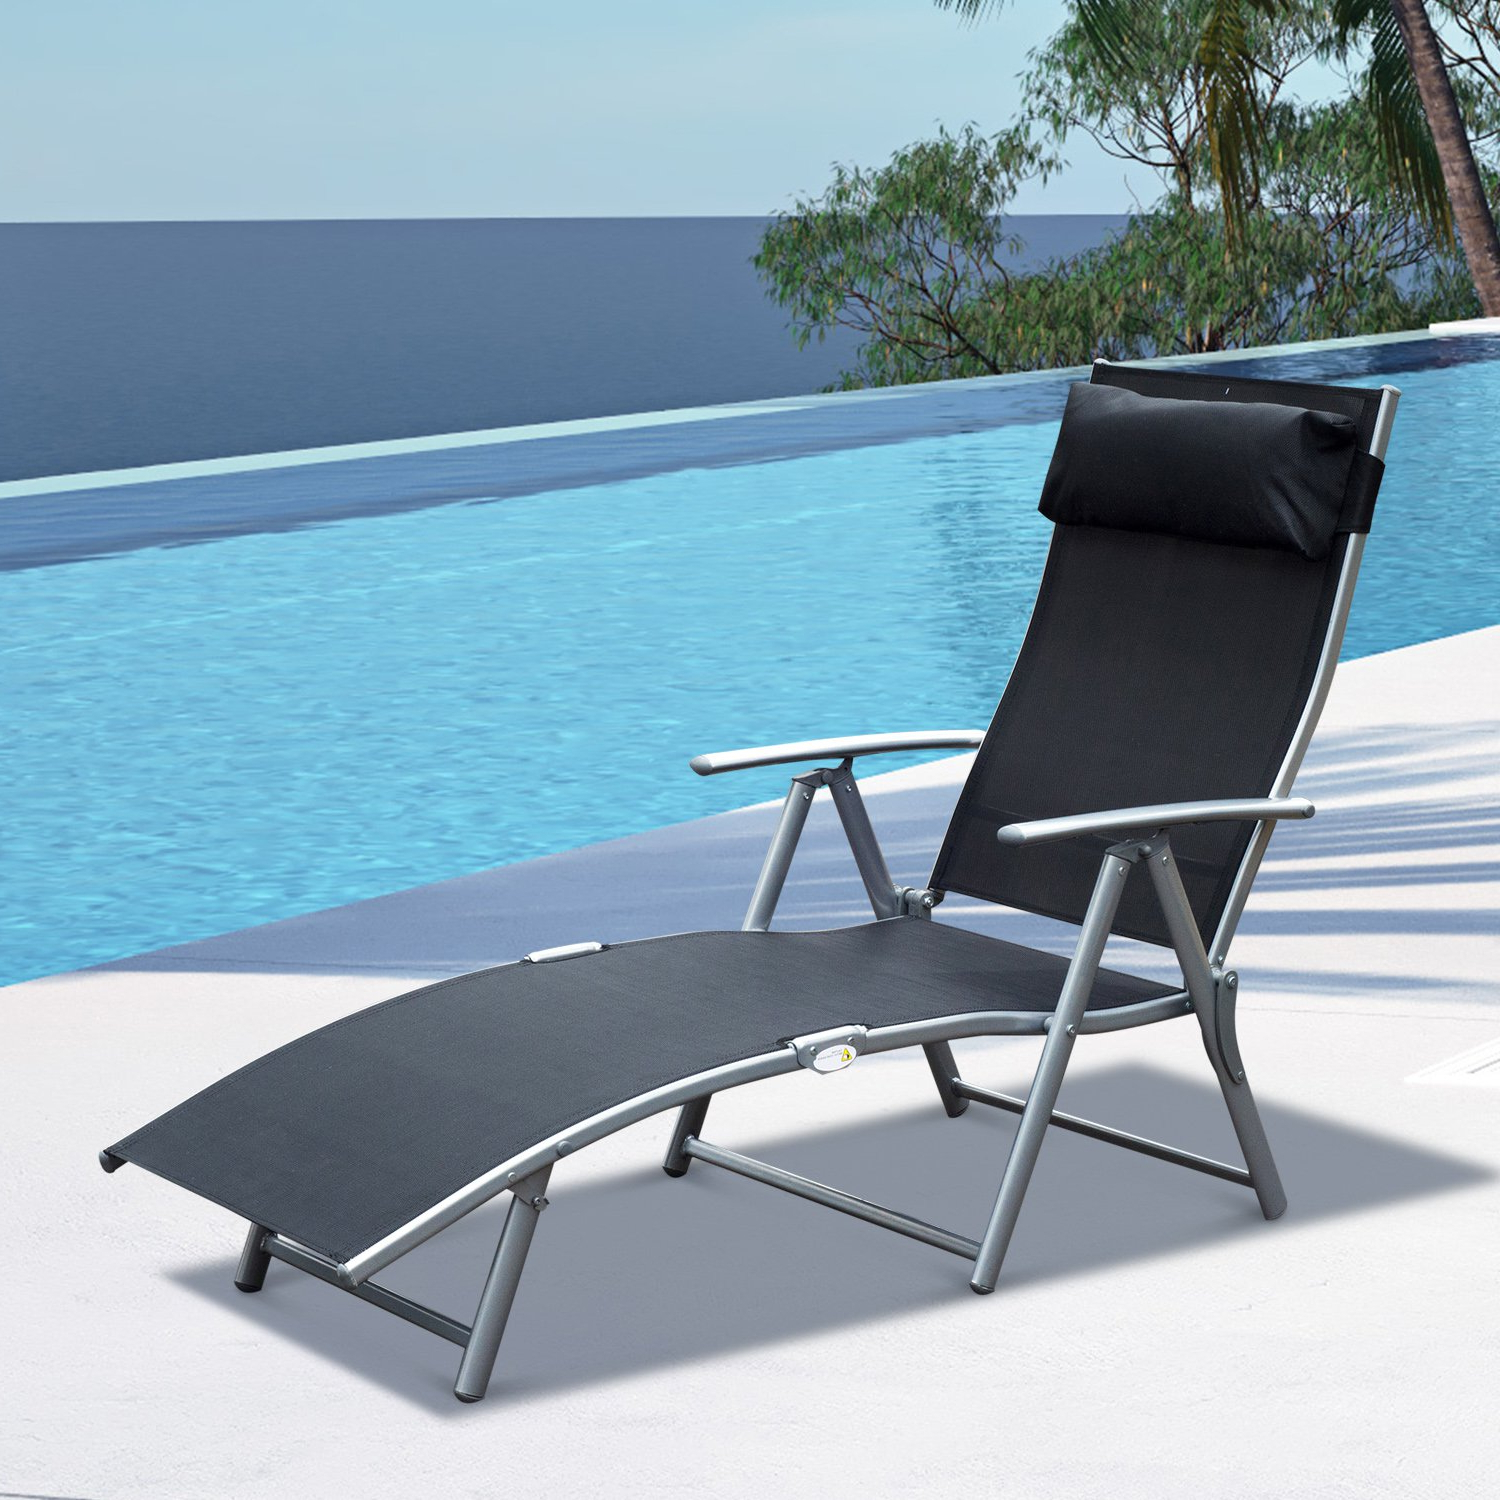 Steel Sling Fabric Outdoor Folding Chaise Lounge Chair Recliner Regarding Favorite Steel Sling Fabric Outdoor Folding Chaise Lounges (View 6 of 25)